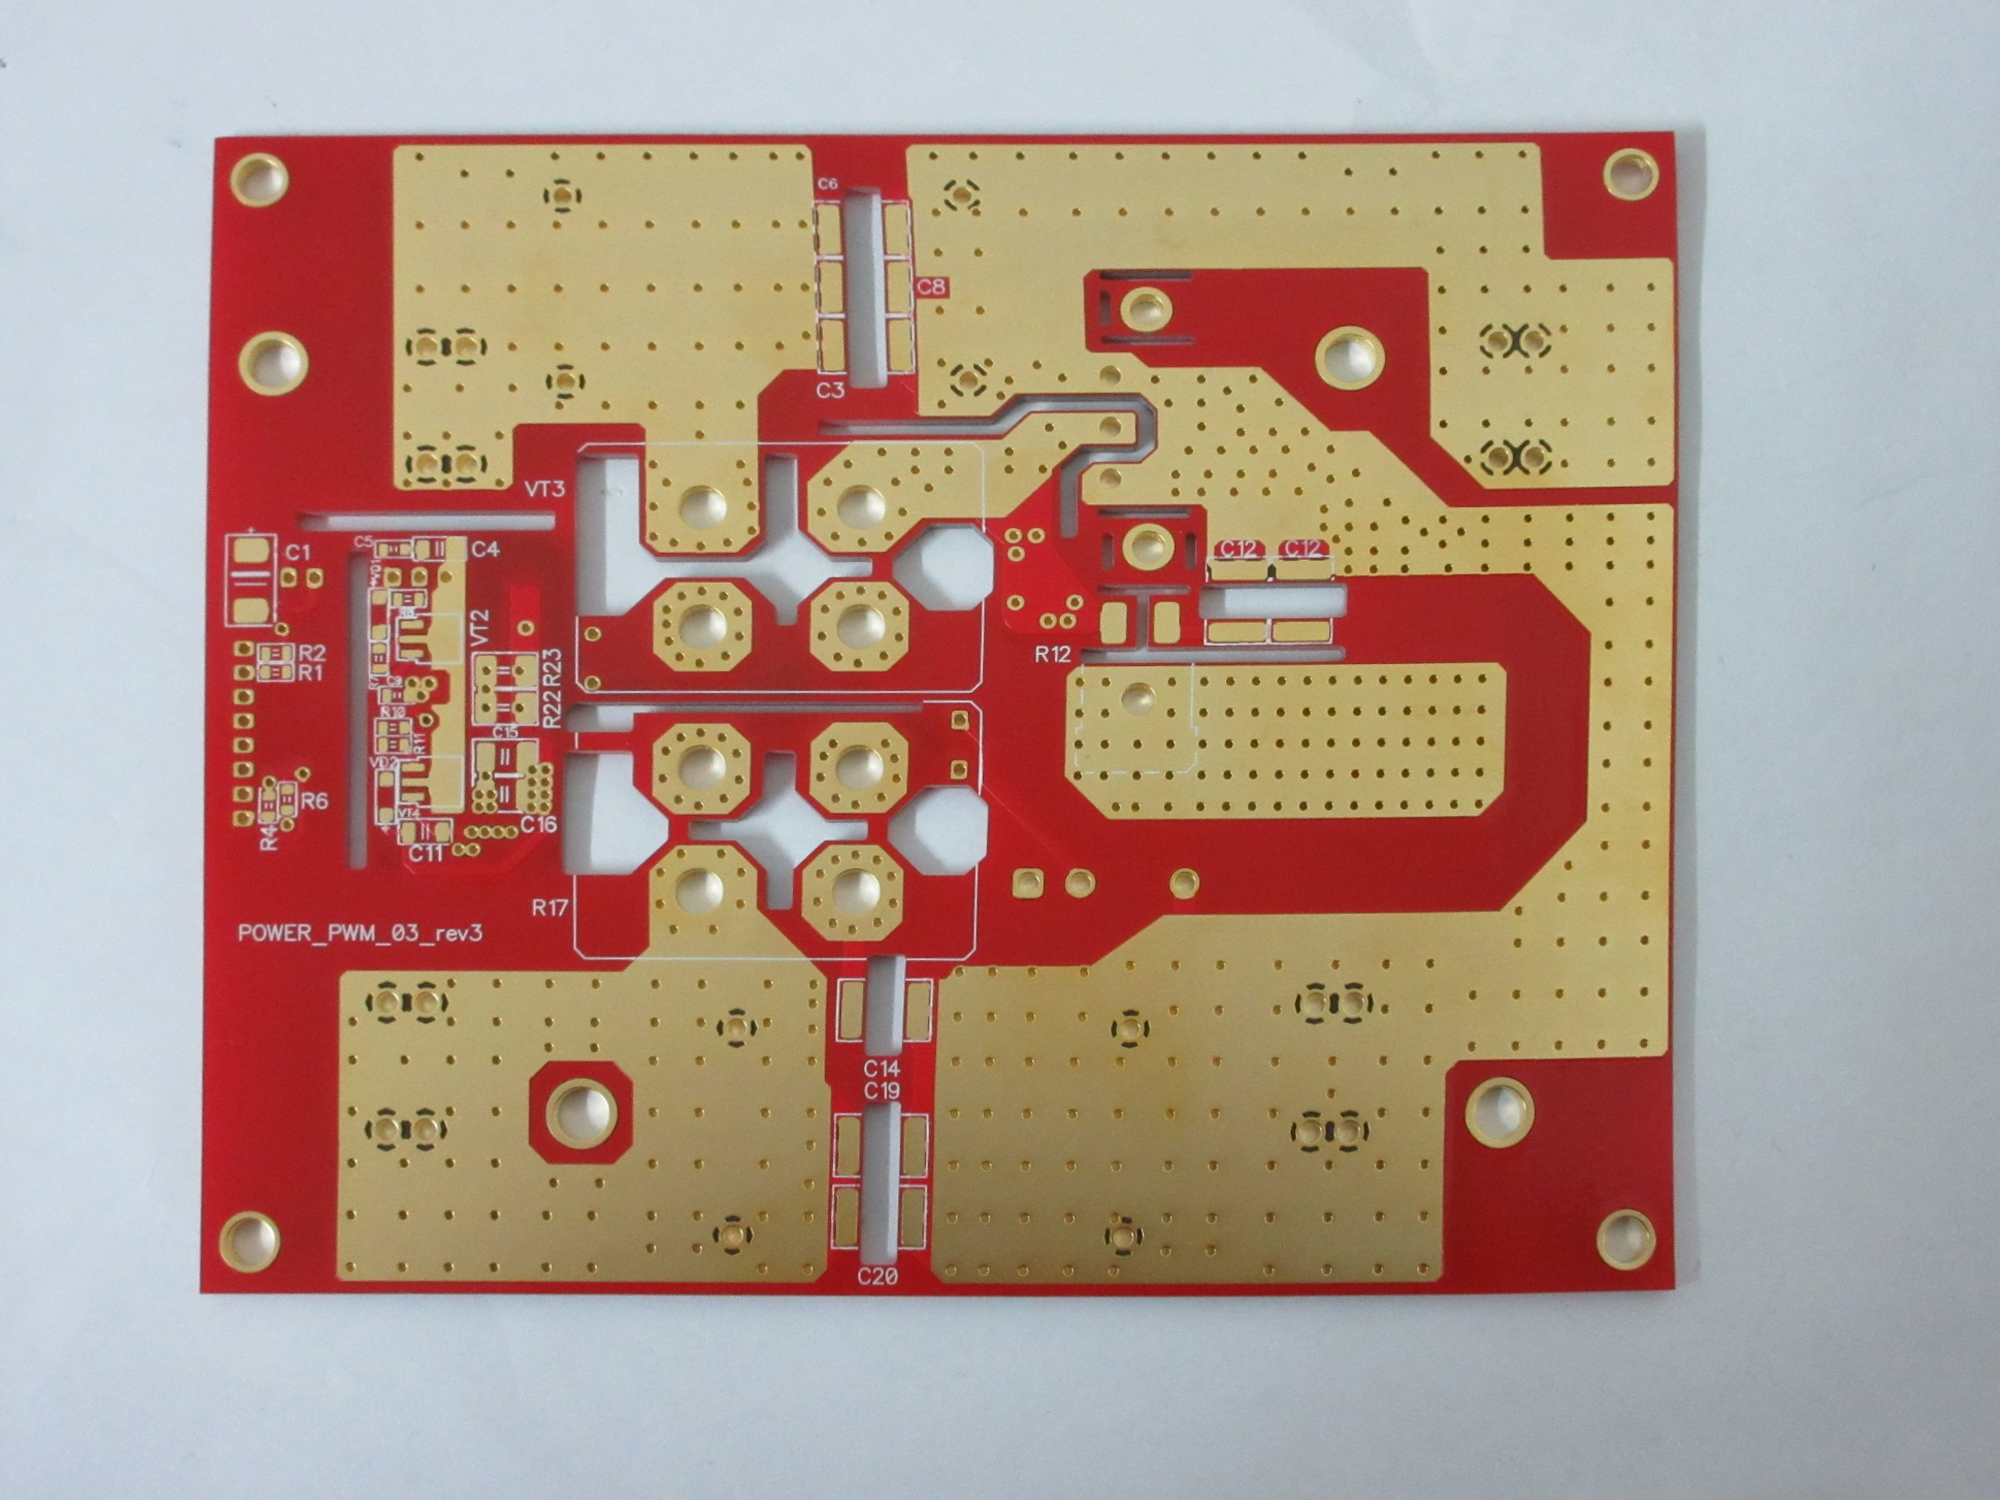 Flexible And Rigidflexible Printed Circuit Board